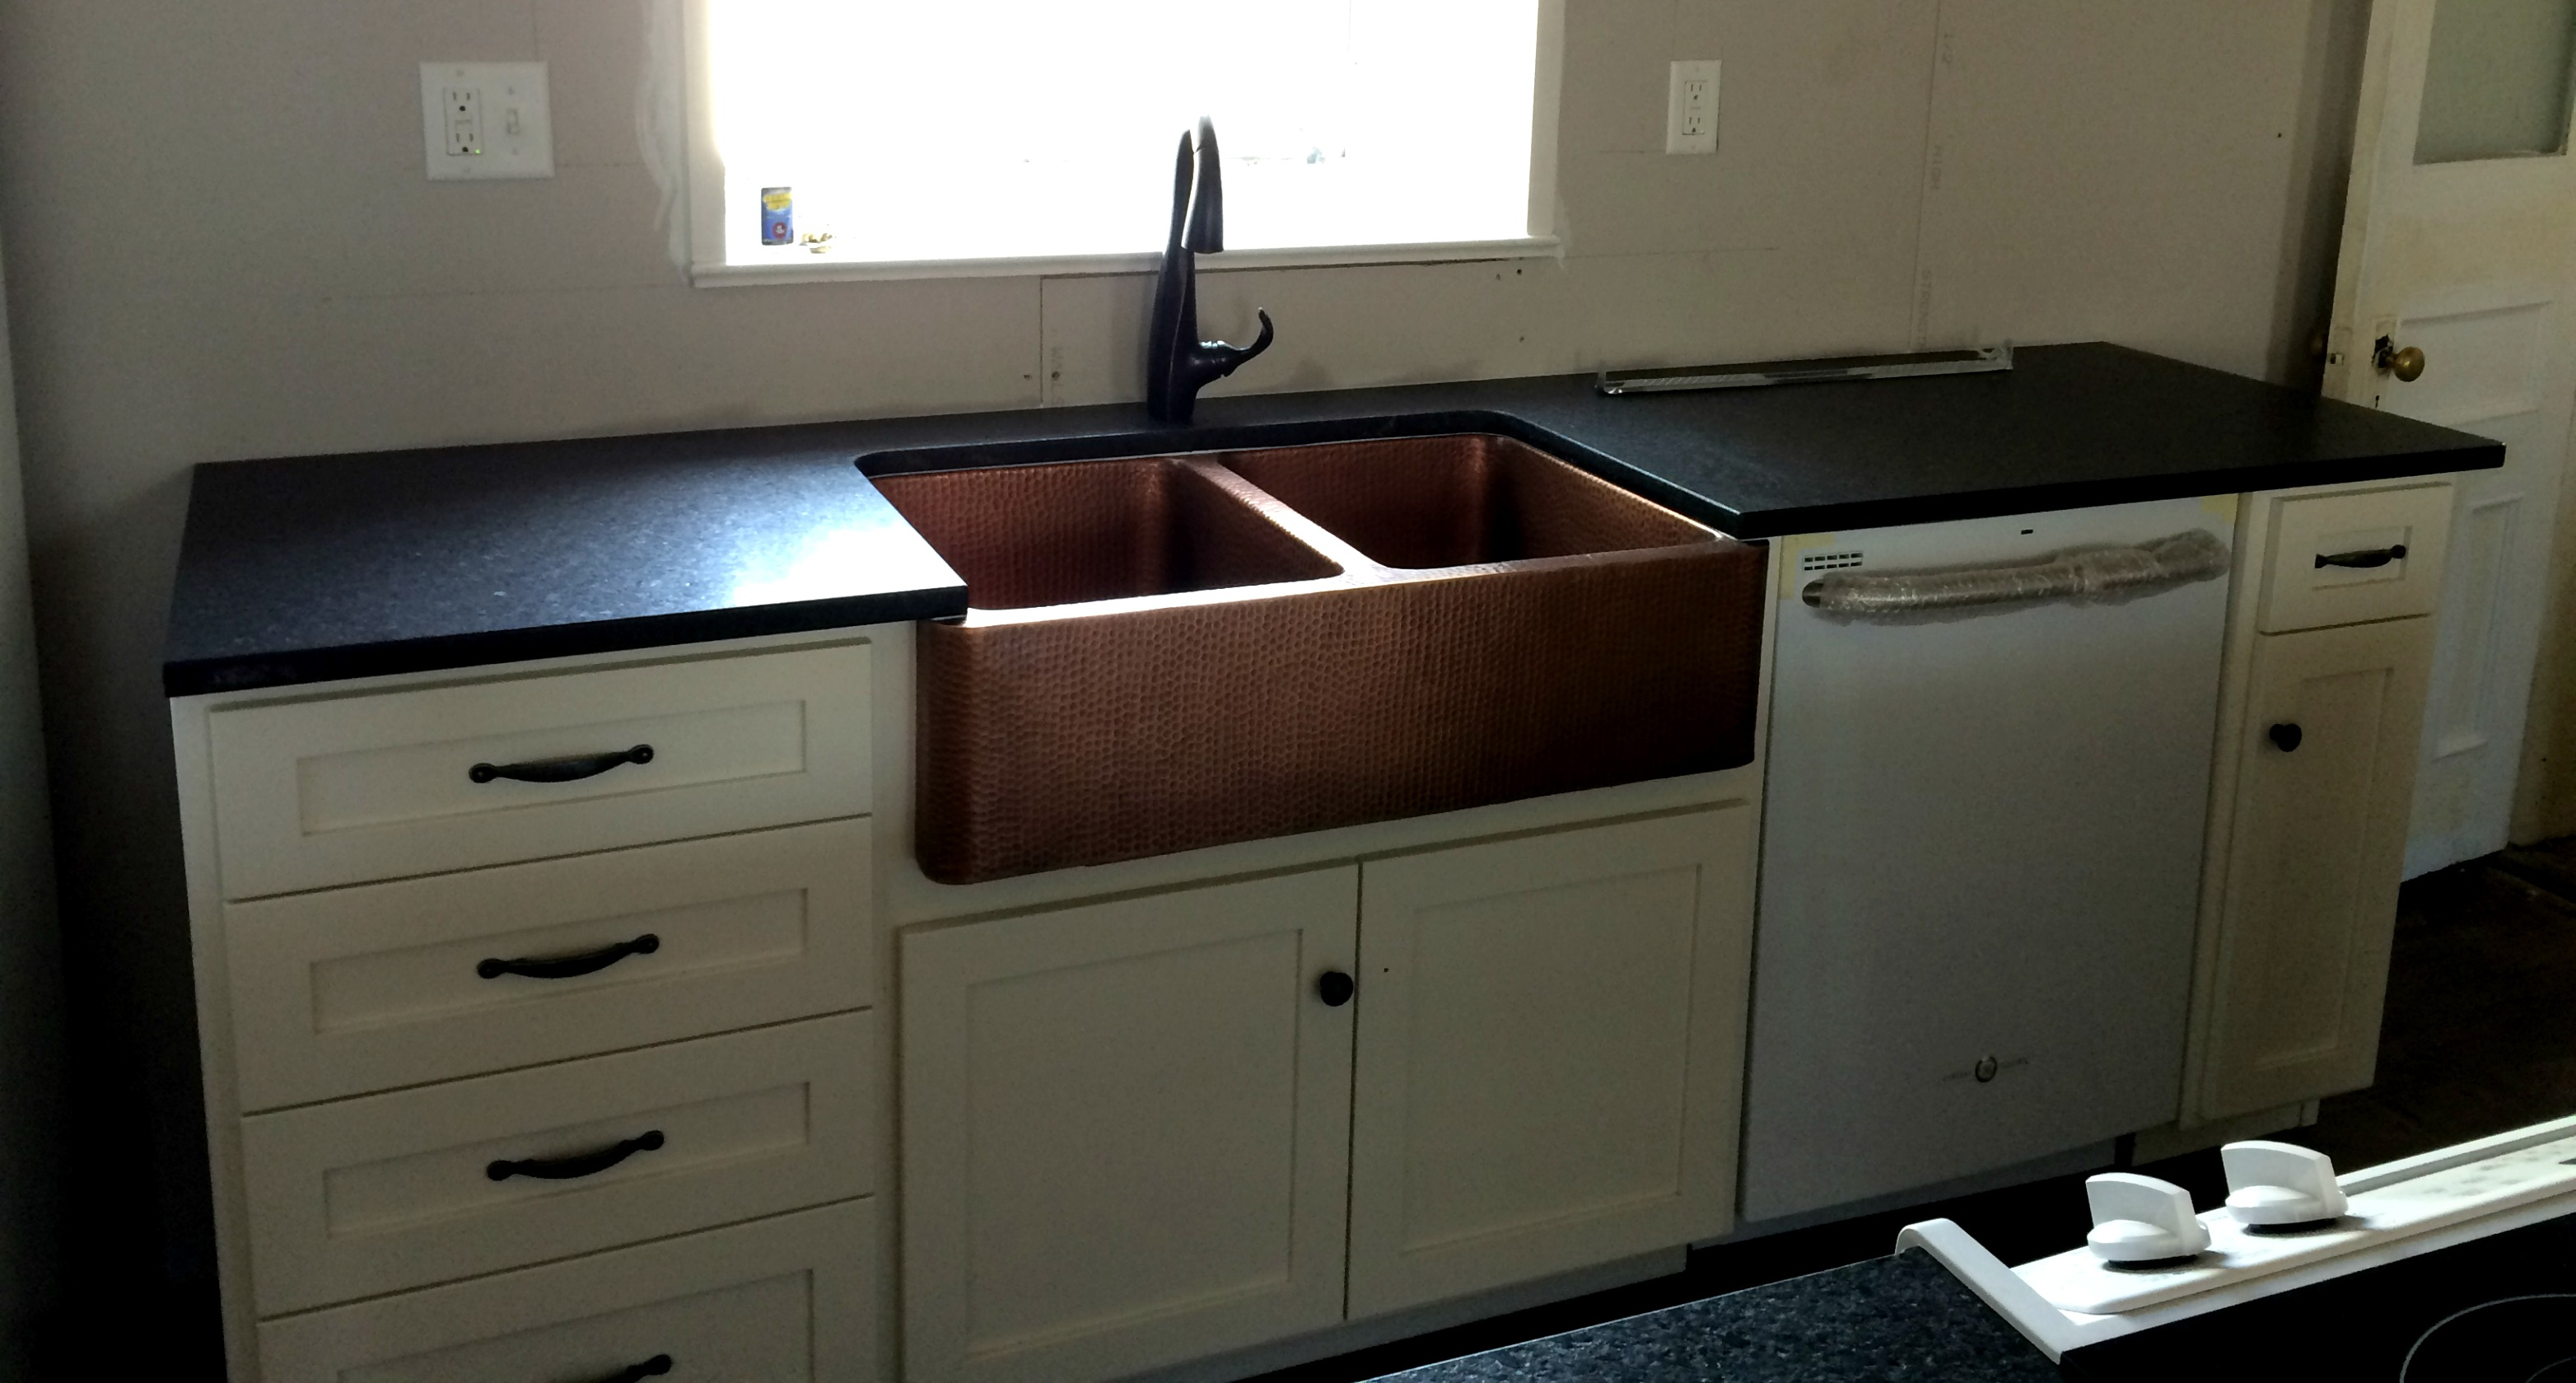 Leathered Granite Counter Tops Christina Maria Blog